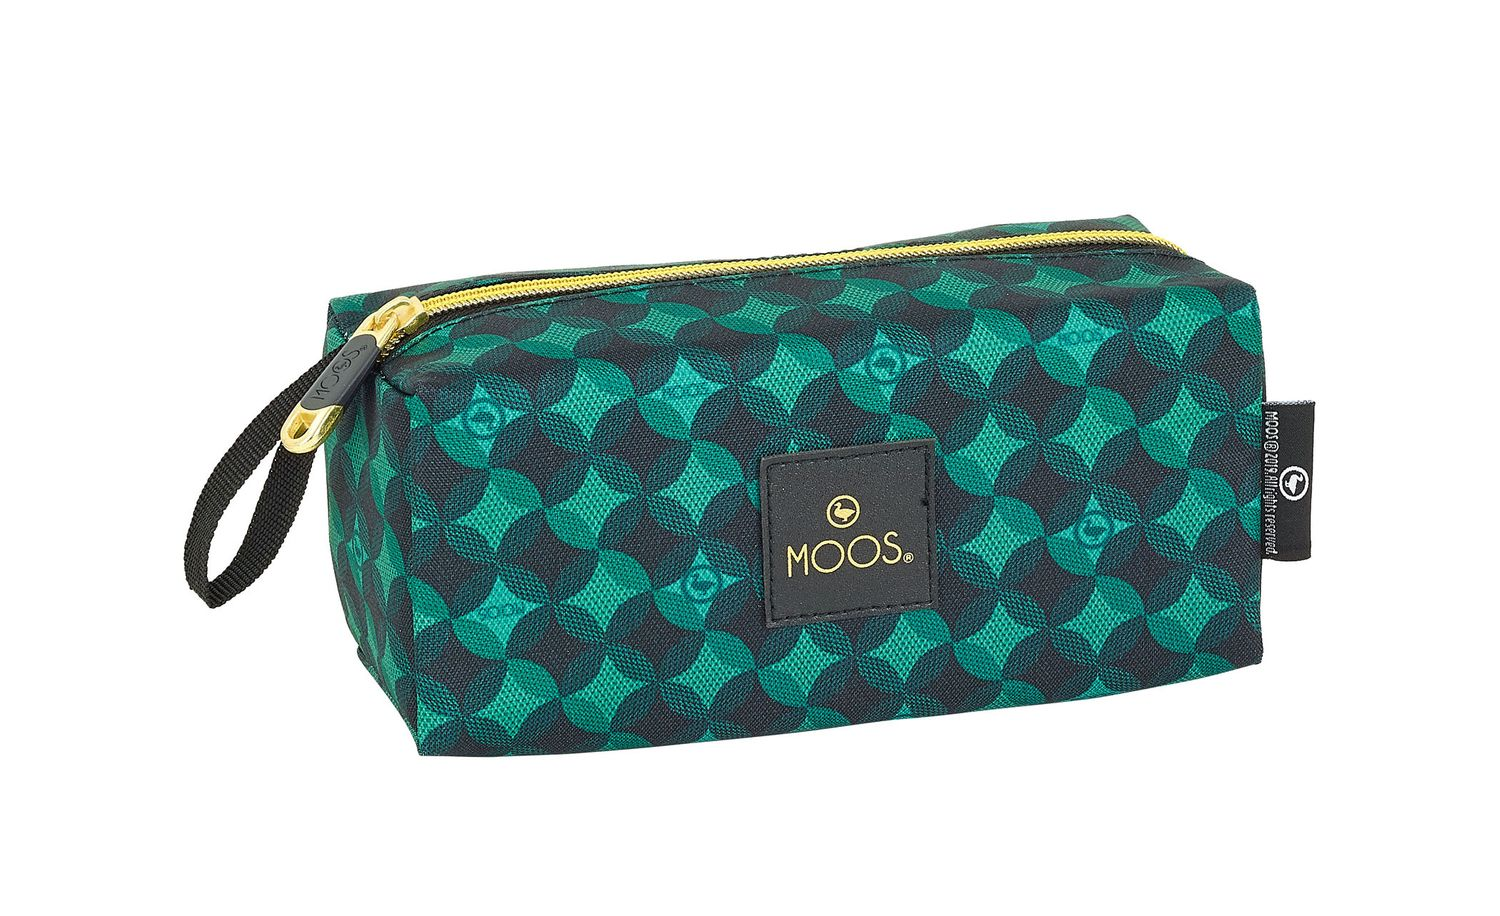 Wash Travel Bag Case MOSS Geometric – image 1